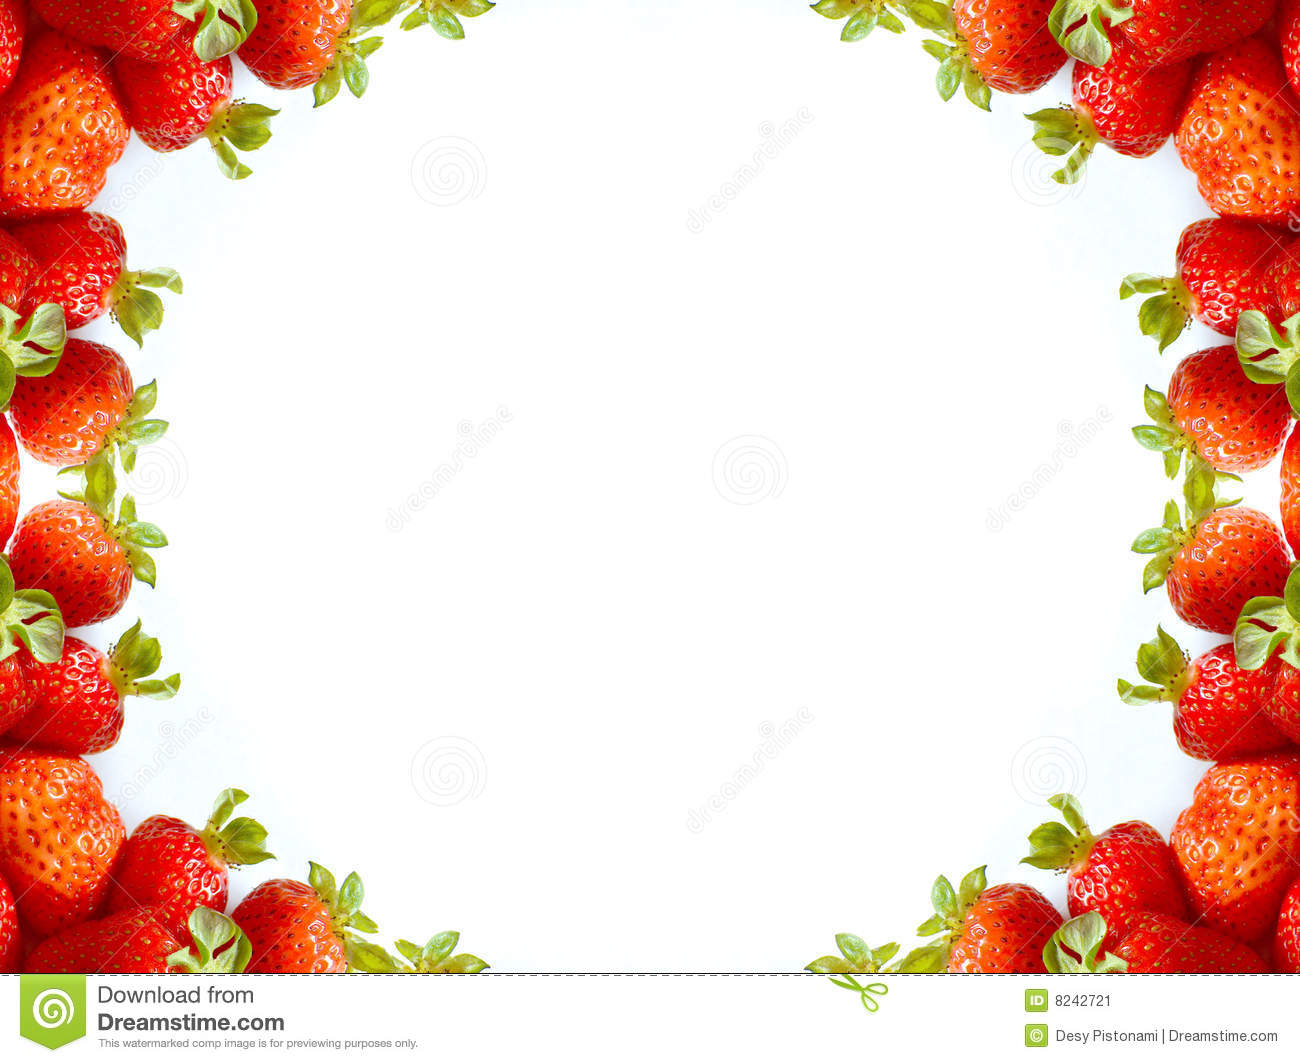 Abstract Strawberry Frame Stock Image - Image: 8242721